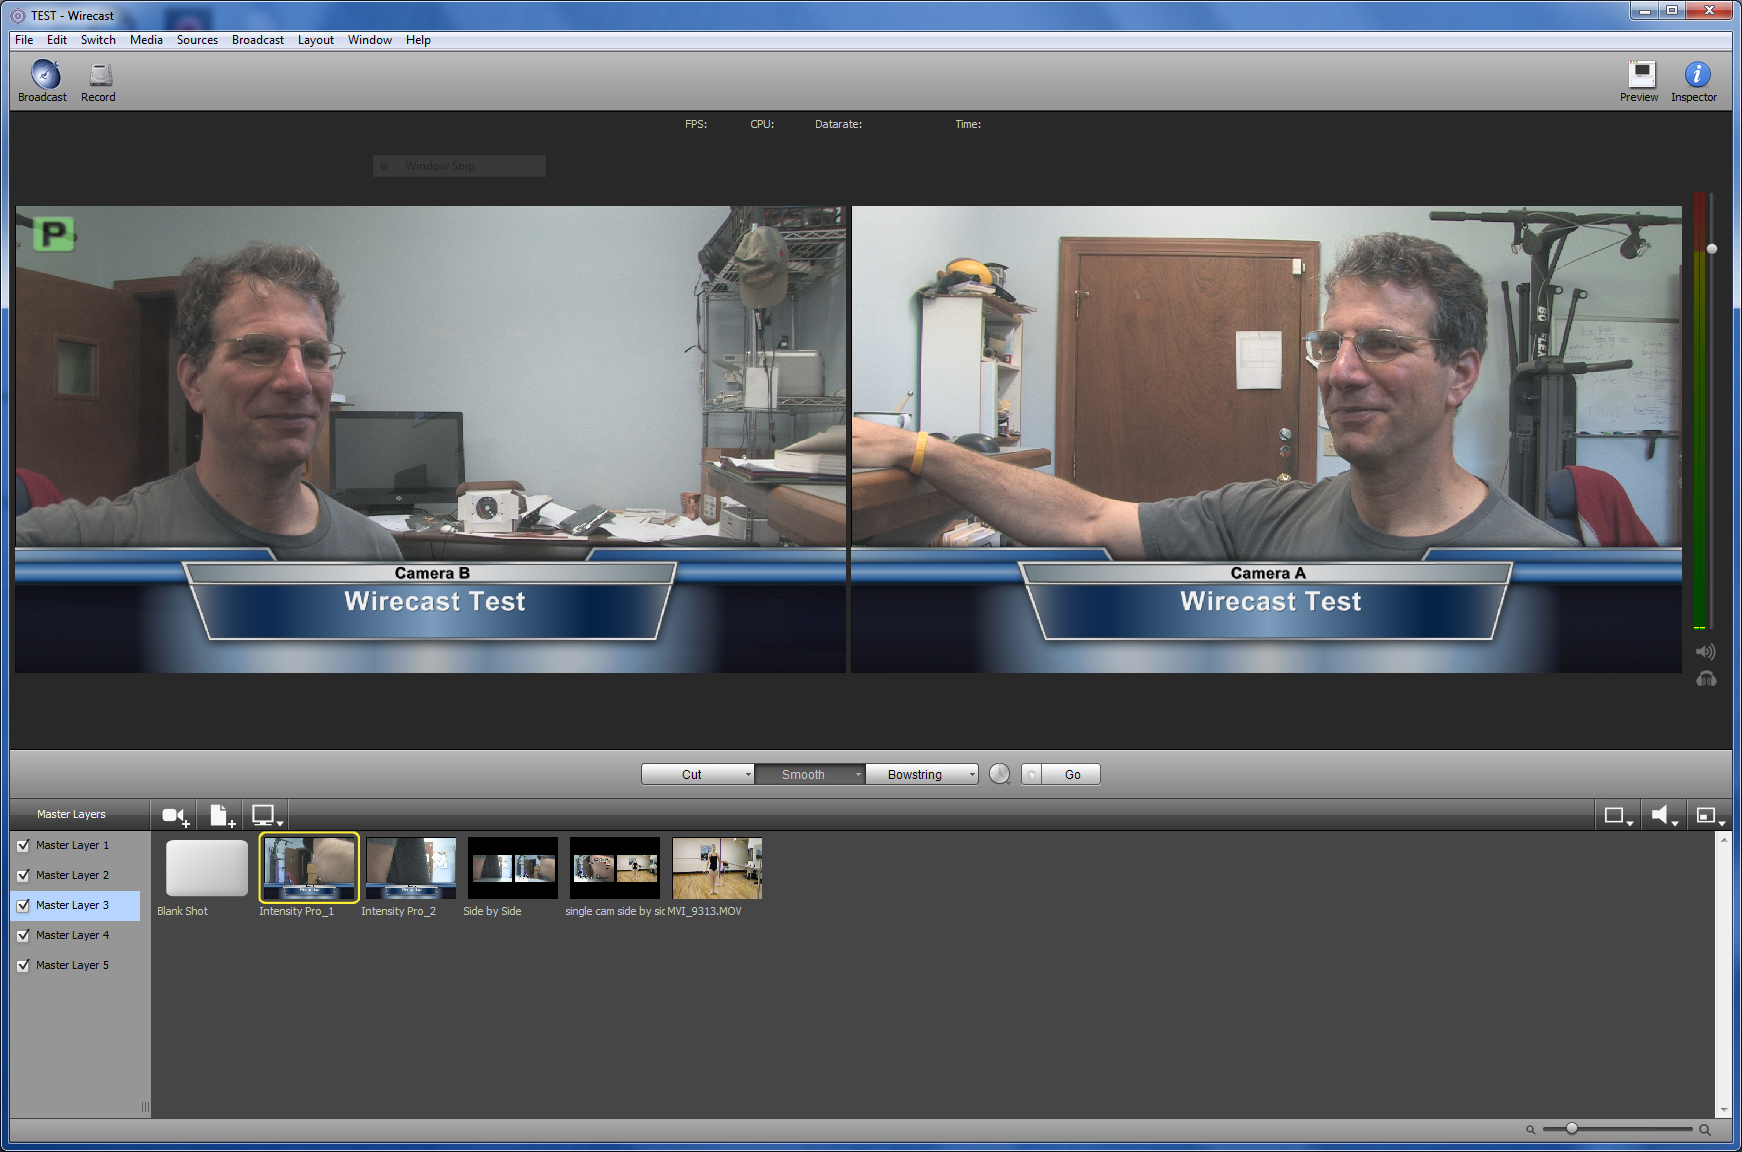 Tutorial Configuring Blackmagic Intensity Pro For A Live Switched Wirecast Webcast Streaming Media Producer